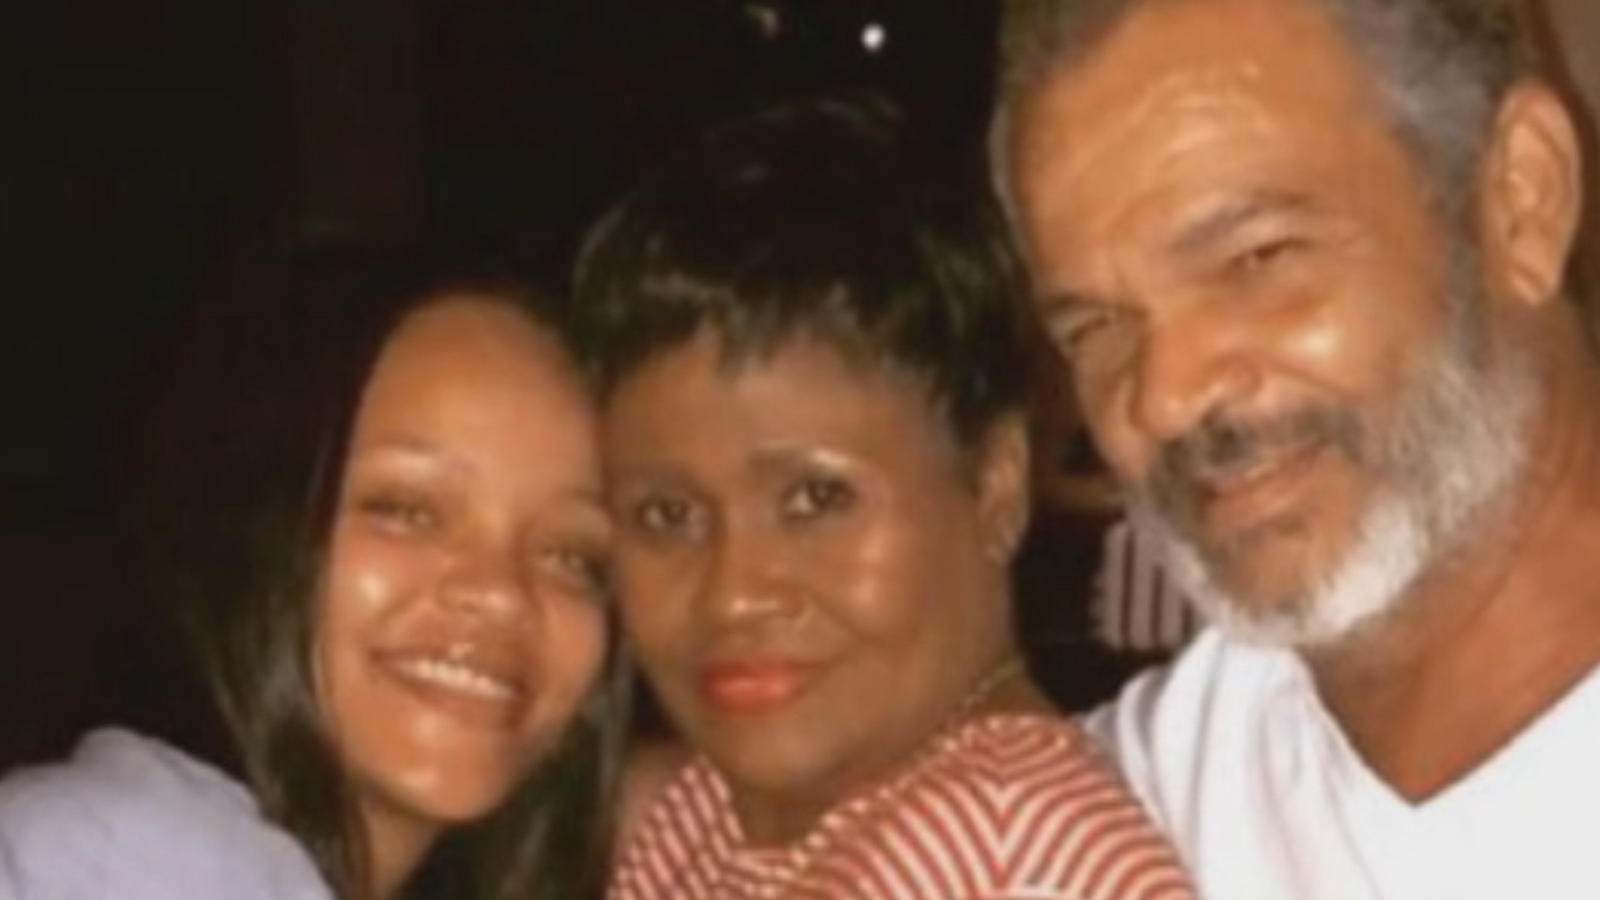 Rihanna sues her father for using her brand name in business deals